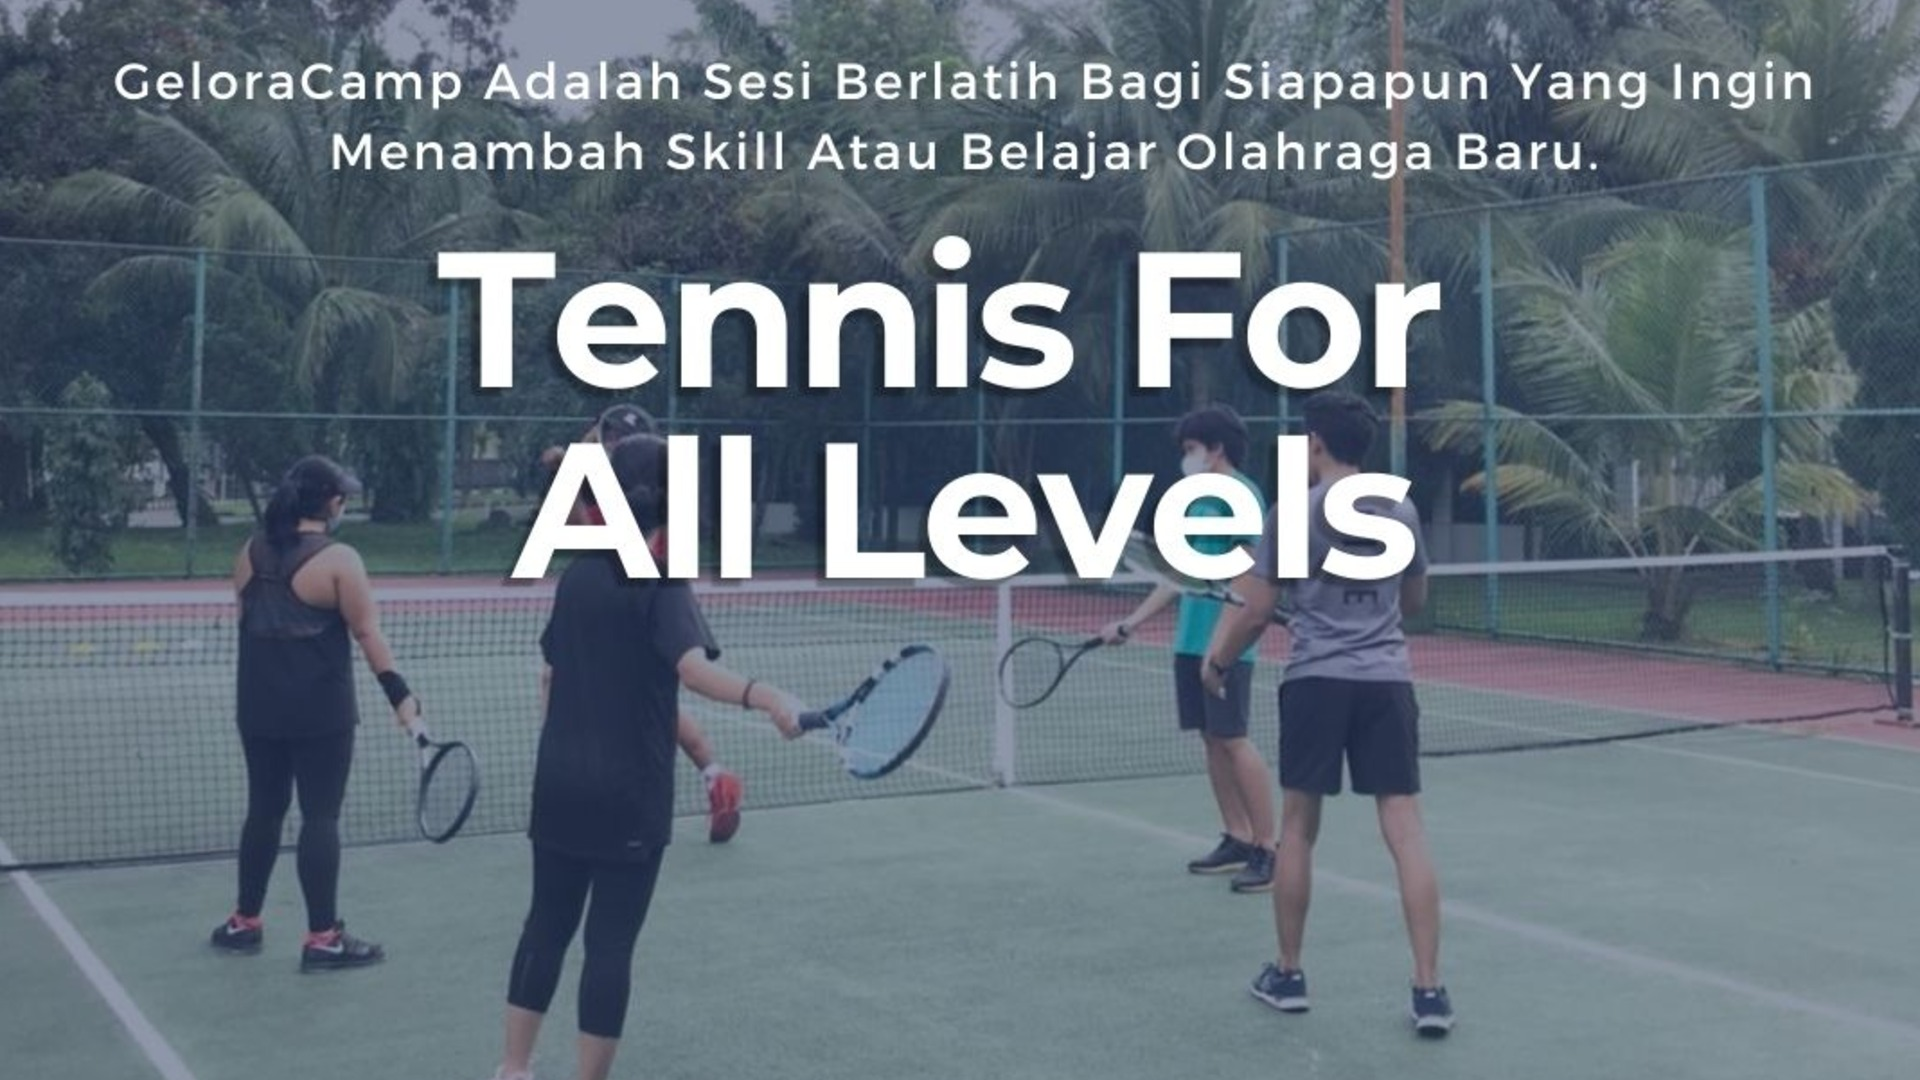 Tenis For All Levels at Pondok Labu Garden Tenis Court